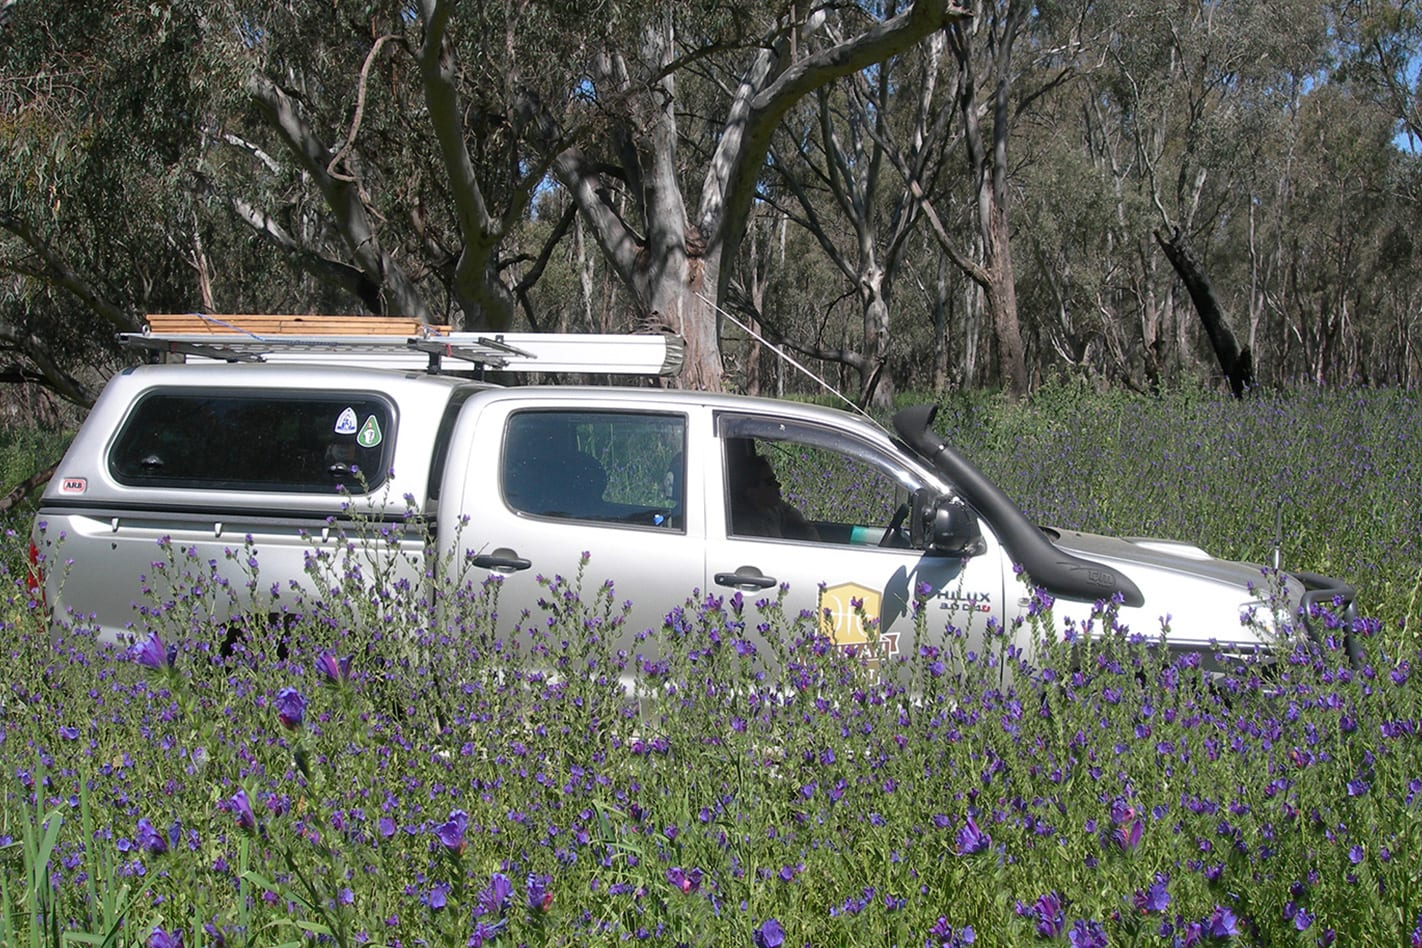 Toyota Hilux field of Patersons Curse